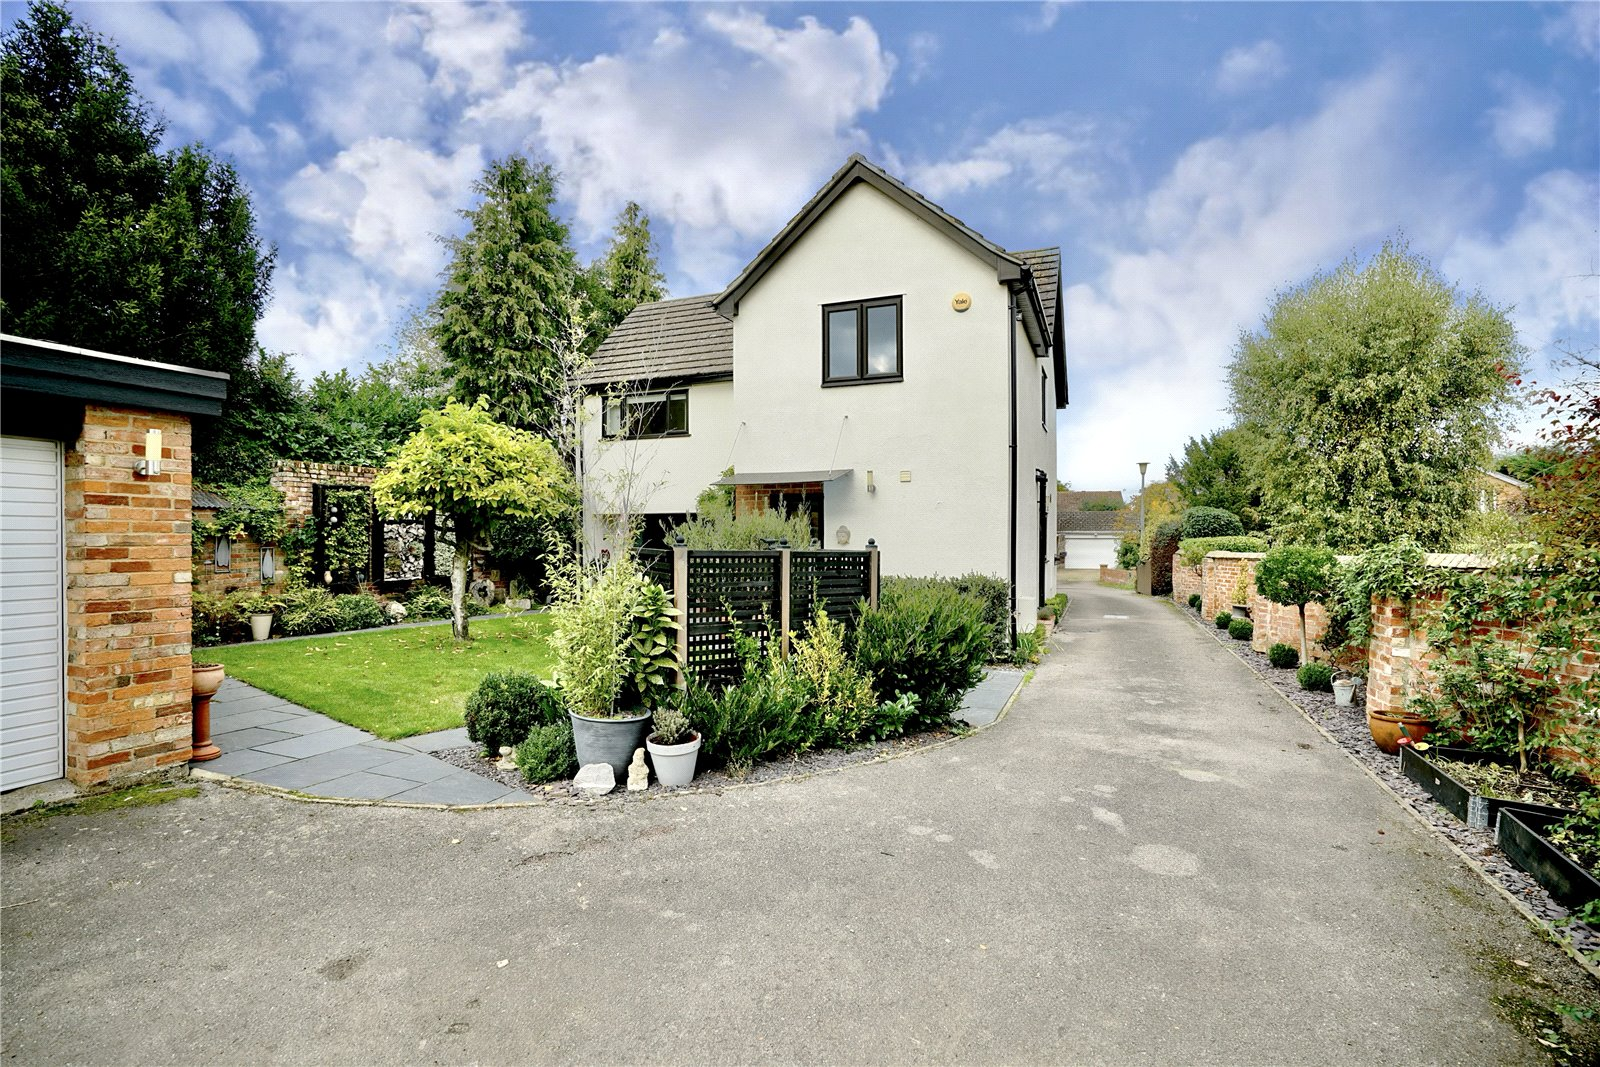 4 bed house for sale in Eaton Socon 13